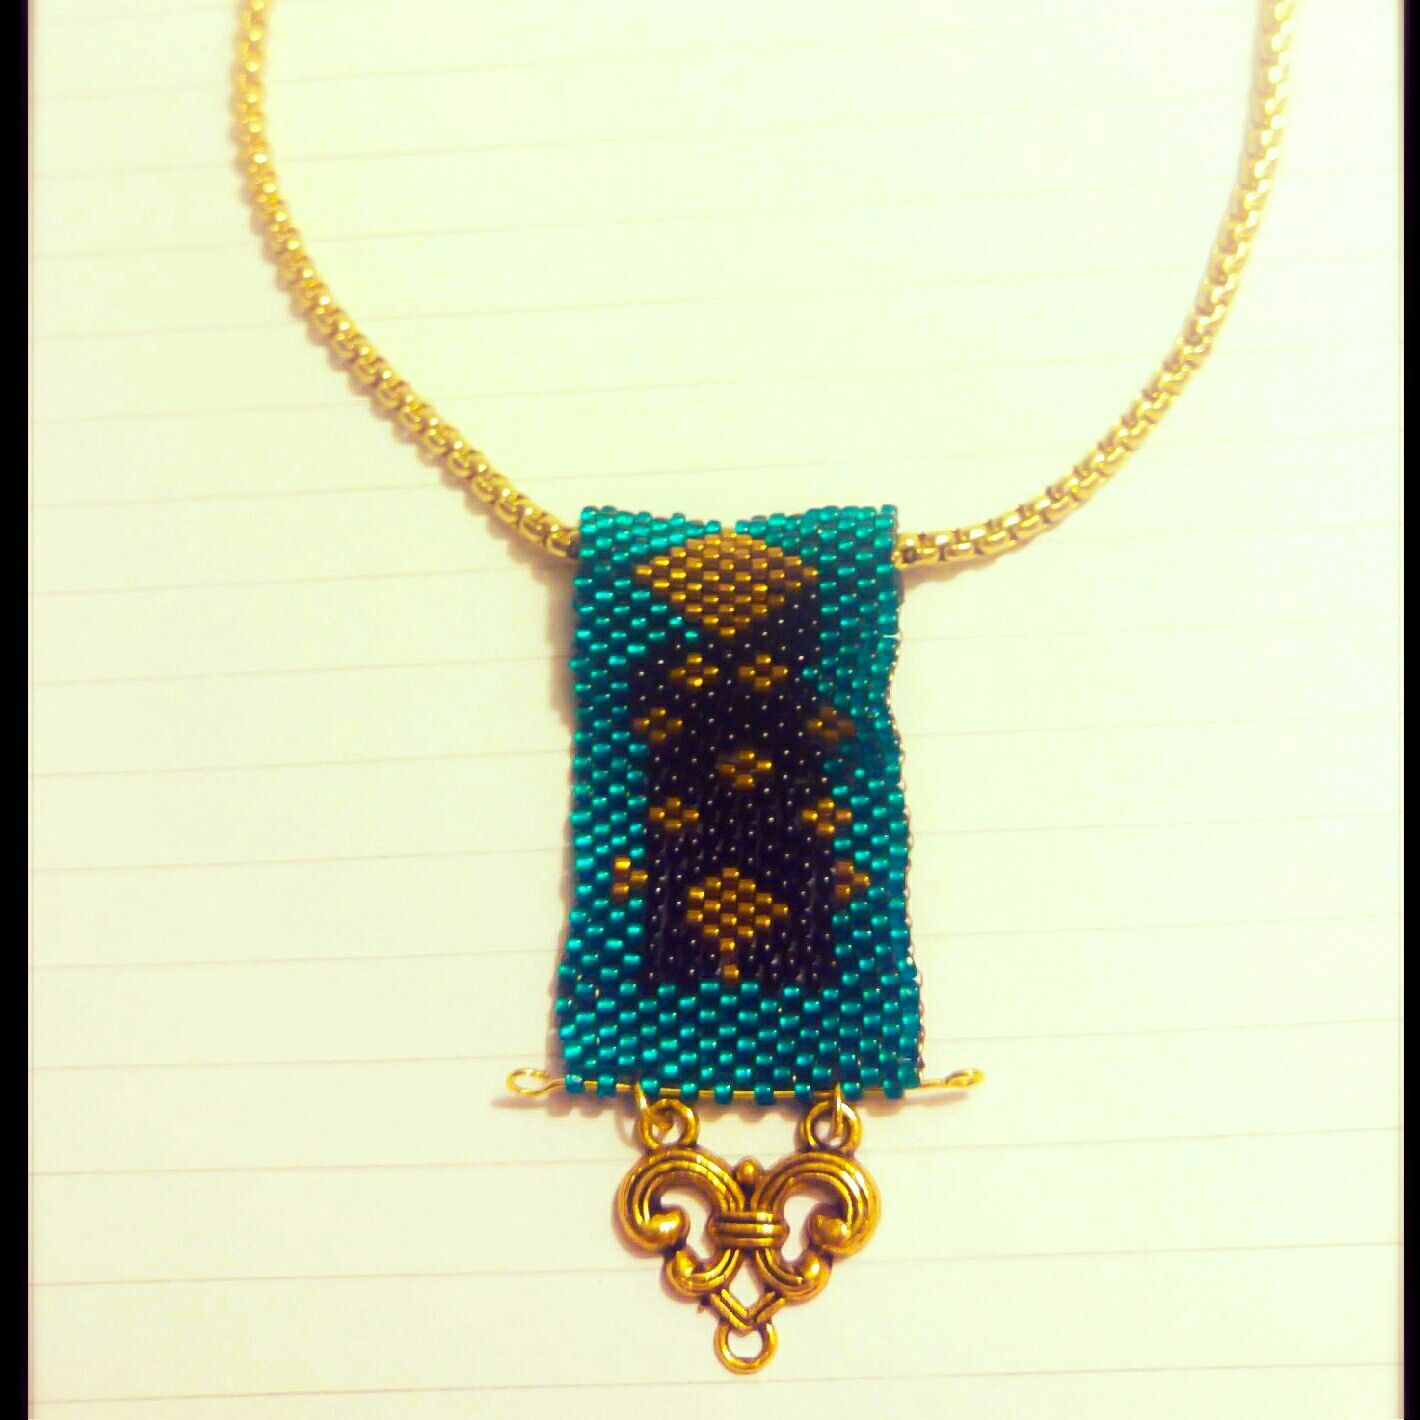 Design house jewelry - Emerald Gold And Black Bear Woven Necklace Design House Jewelry